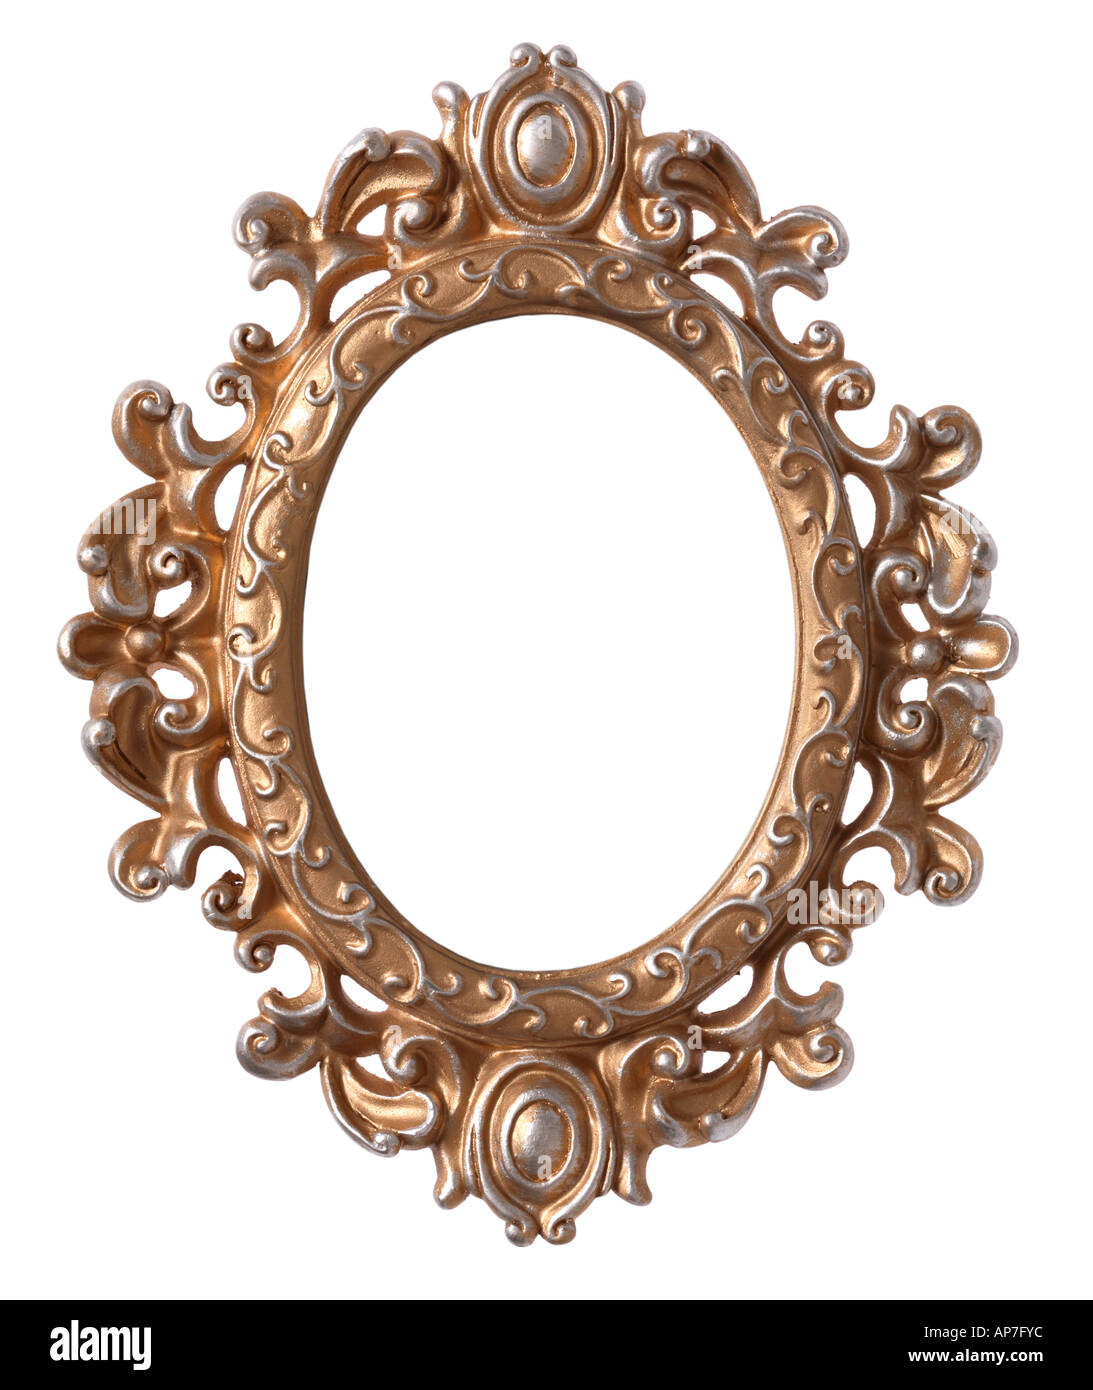 Oval Frames Antique Stock Photos & Oval Frames Antique Stock Images ...